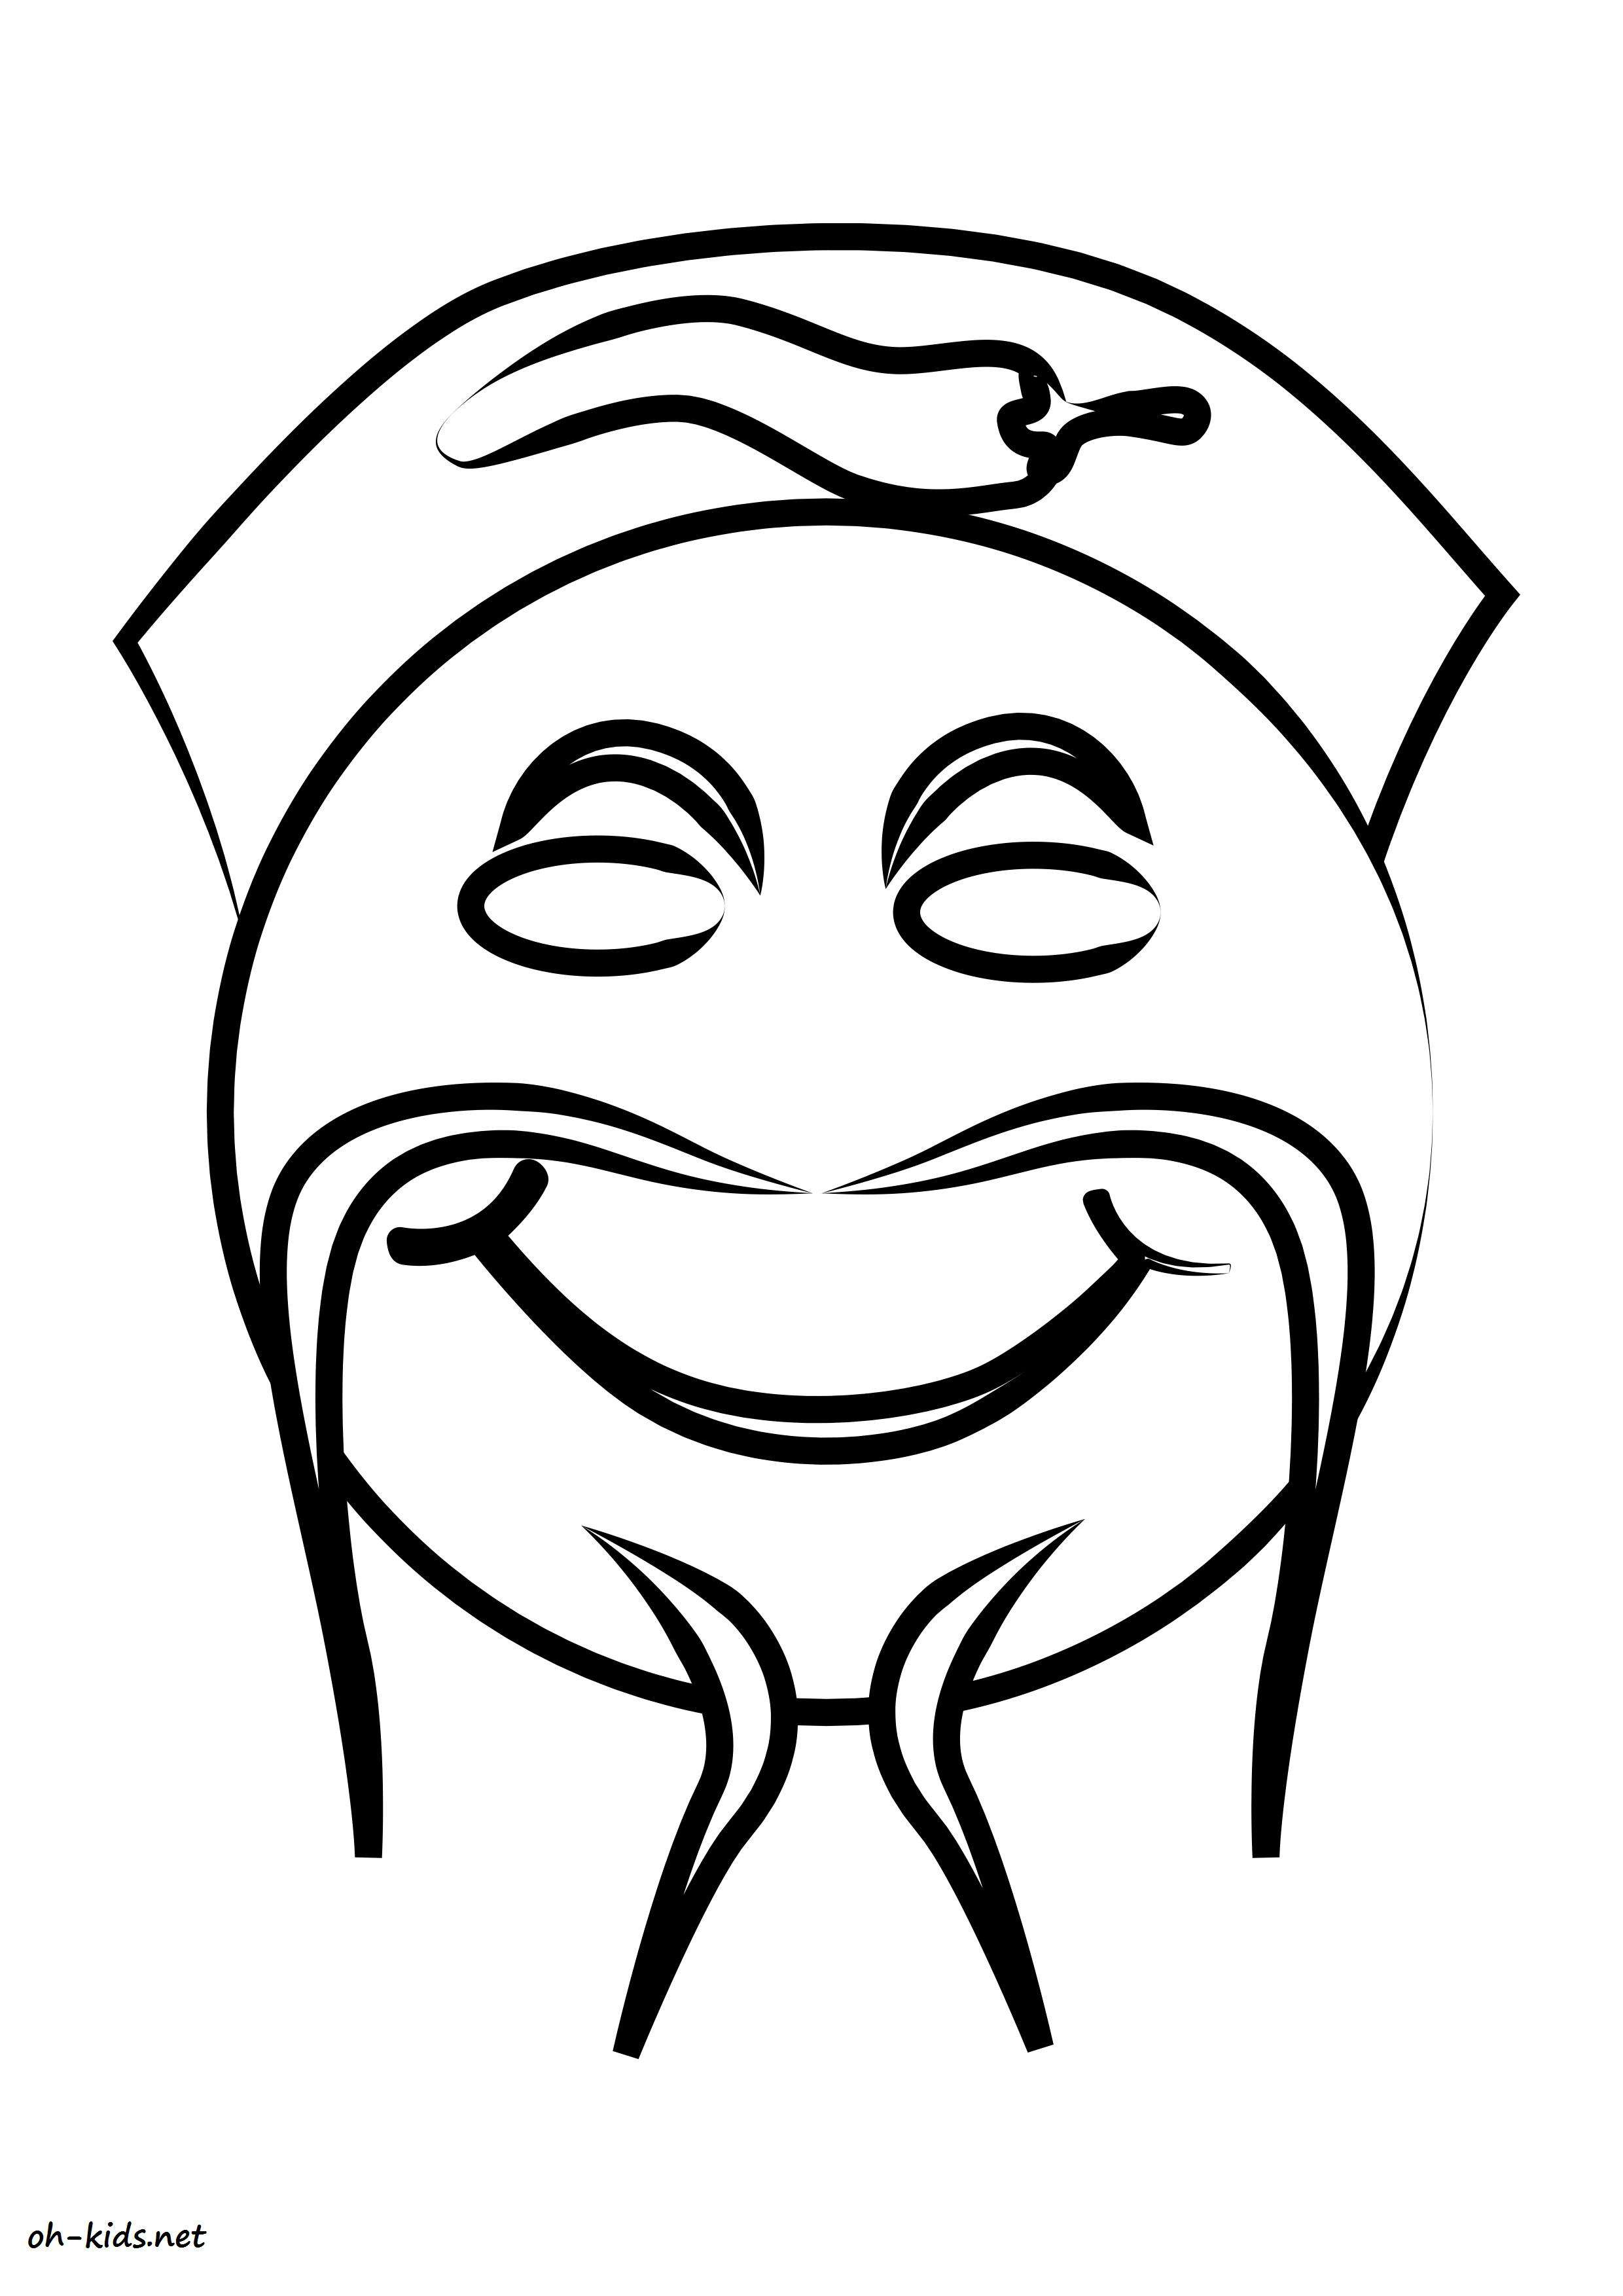 Coloriage Smiley.Dessin 759 Coloriage Smiley A Imprimer Oh Kids Net